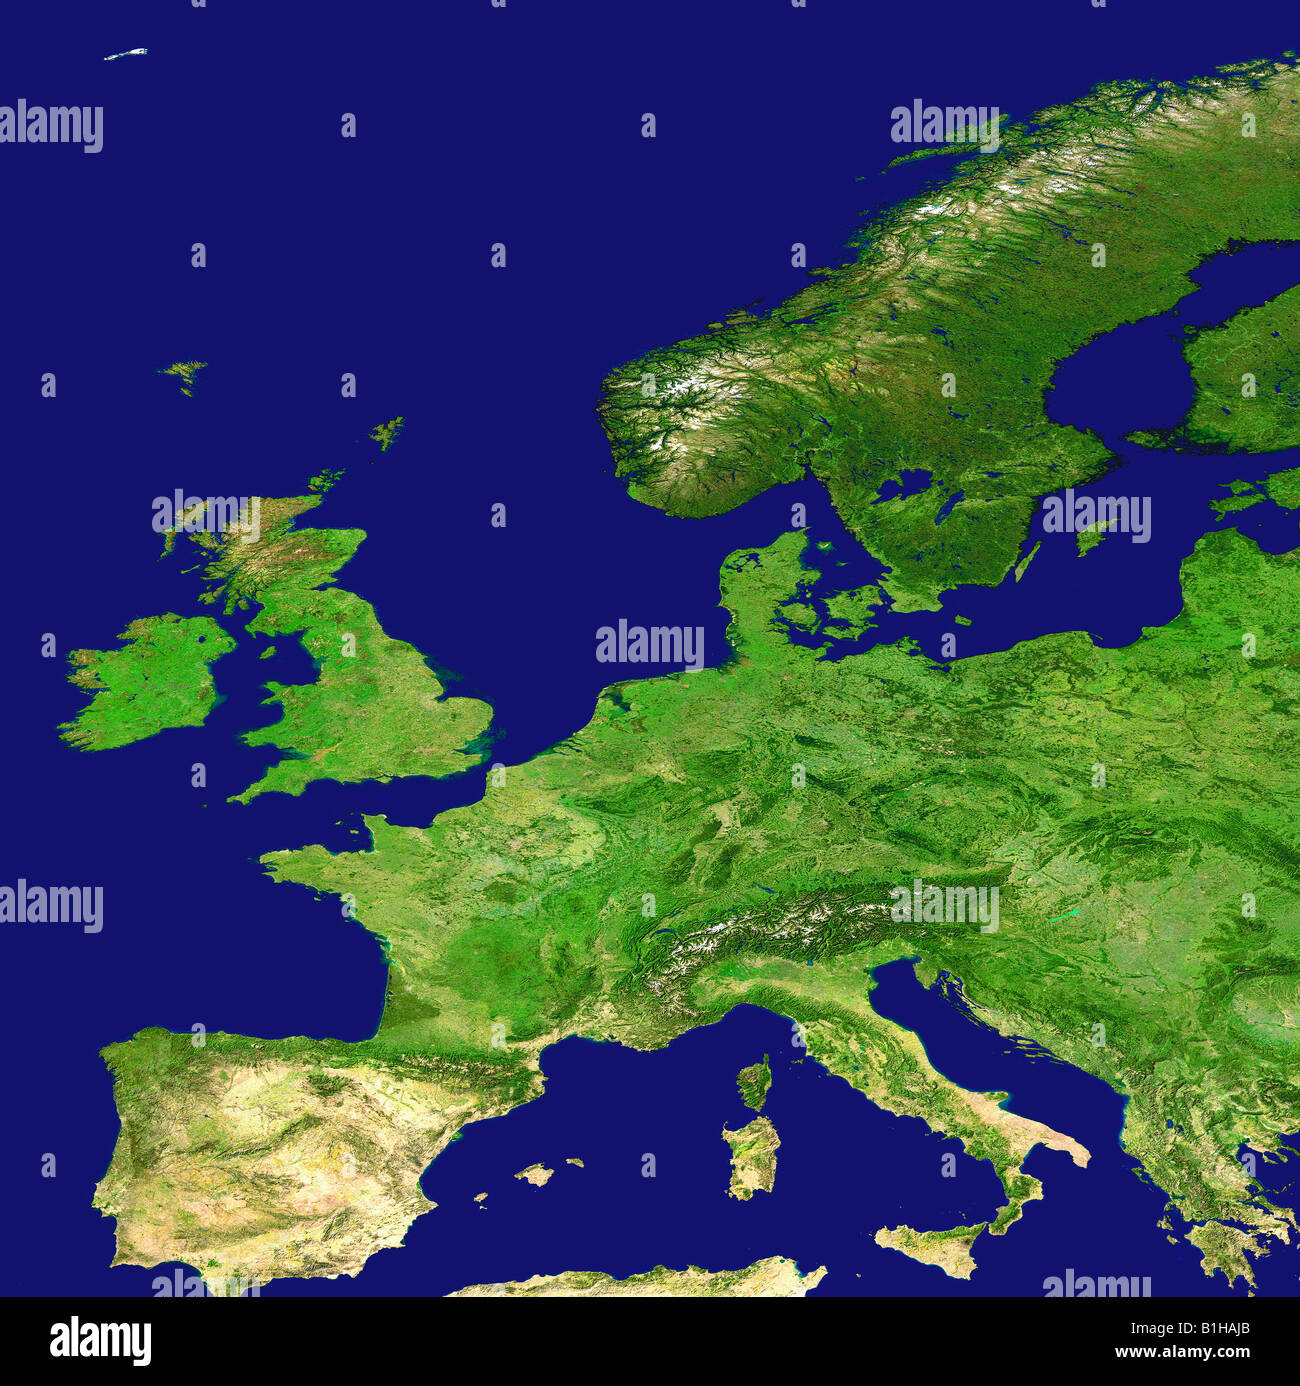 Topograhical Map of Europe - Stock Image